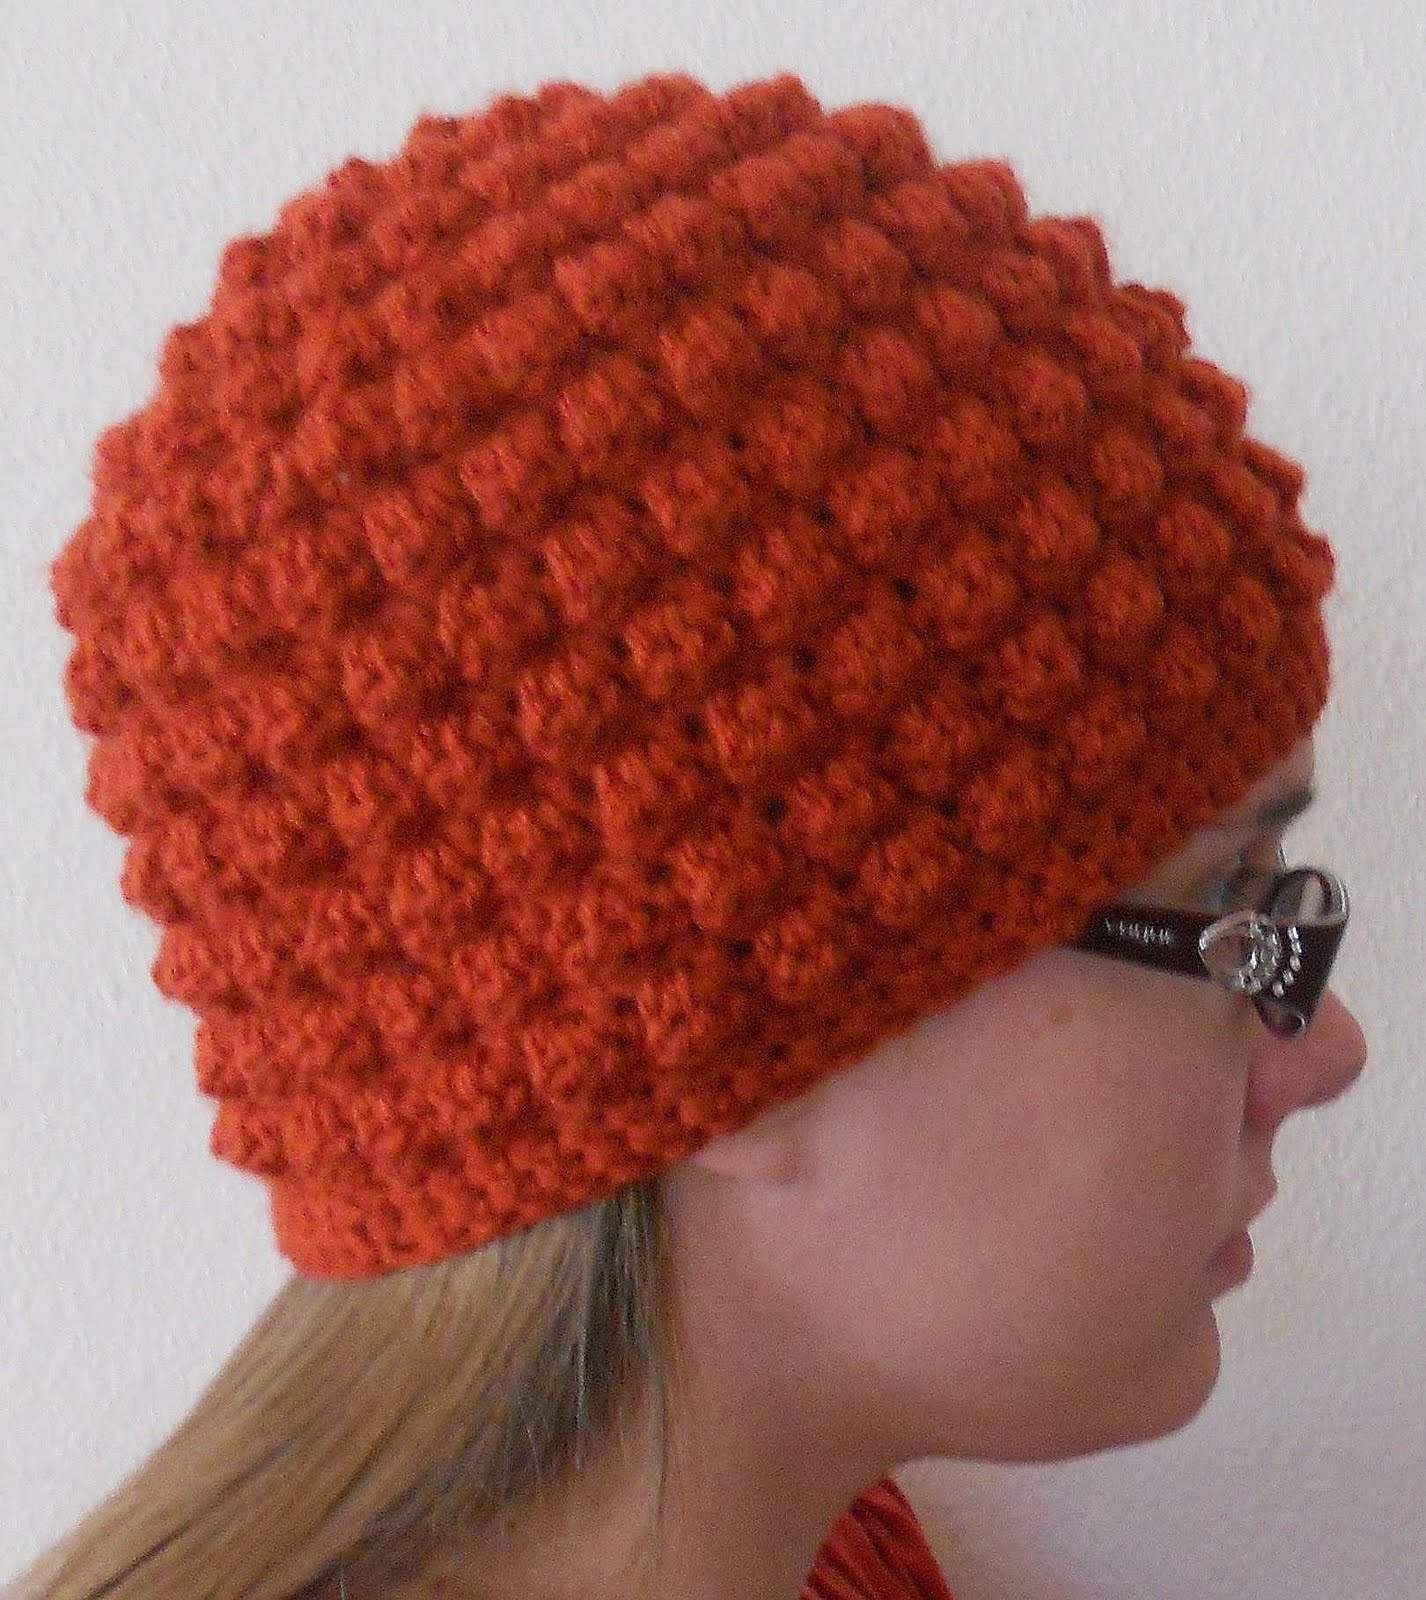 Crochet Patterns Hats For Adults : ... Woman Creations: Free Adult Size Bumpy Bobbles Beanie Crochet Pattern